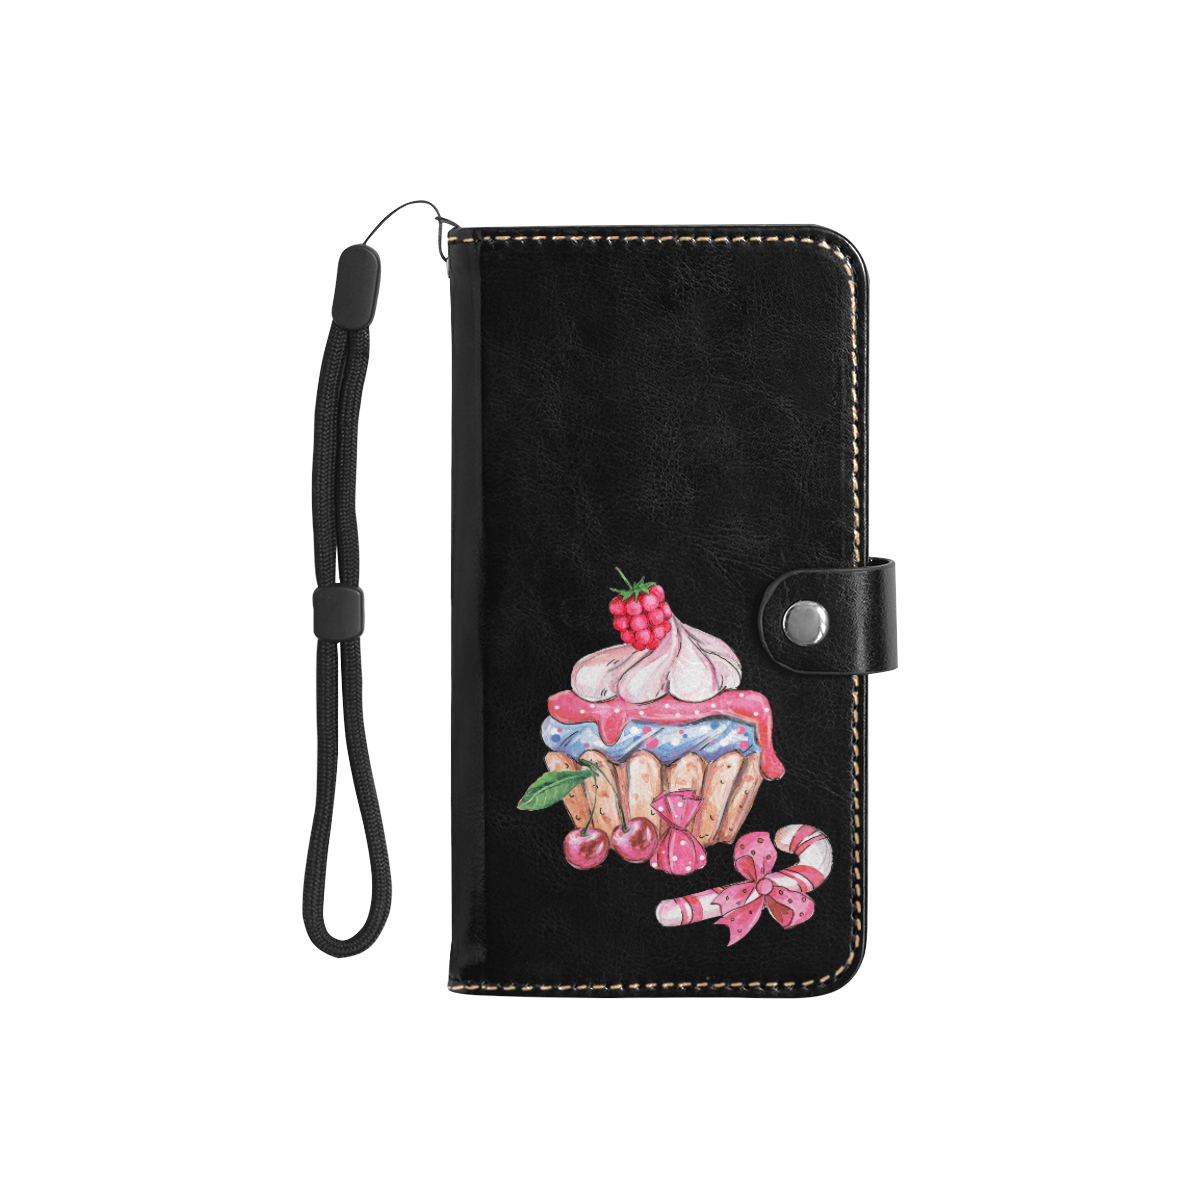 cupcake Flip Leather Purse for Mobile Phone/Small (Model 1704)